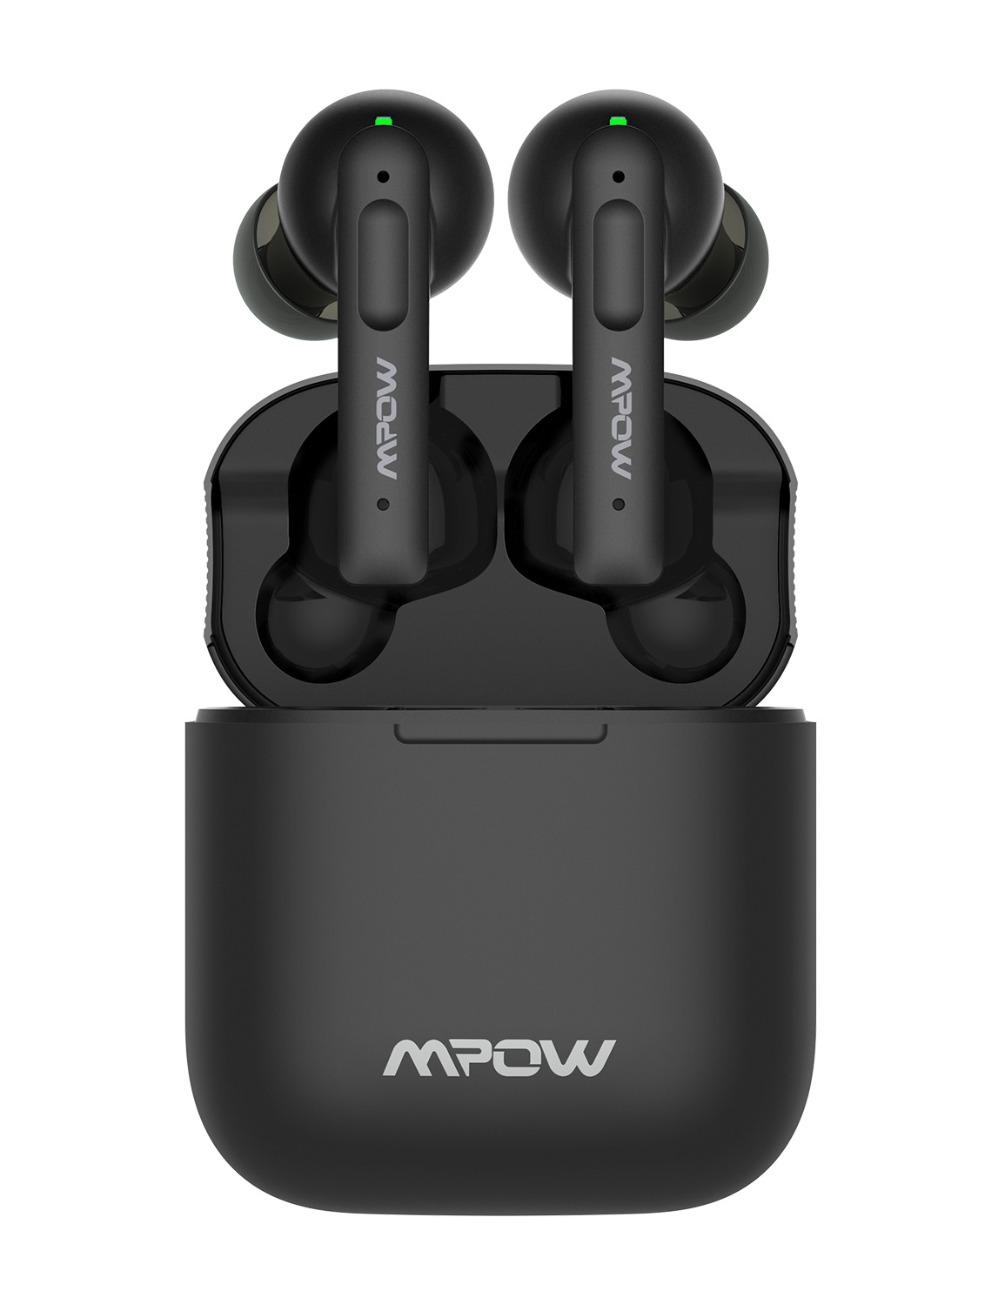 Mpow X3 ANC True Wireless Earbuds Bluetooth 5.0 Wireless Earphones Active Noise Canceling Headphone Touch Control for Smartphone (8)